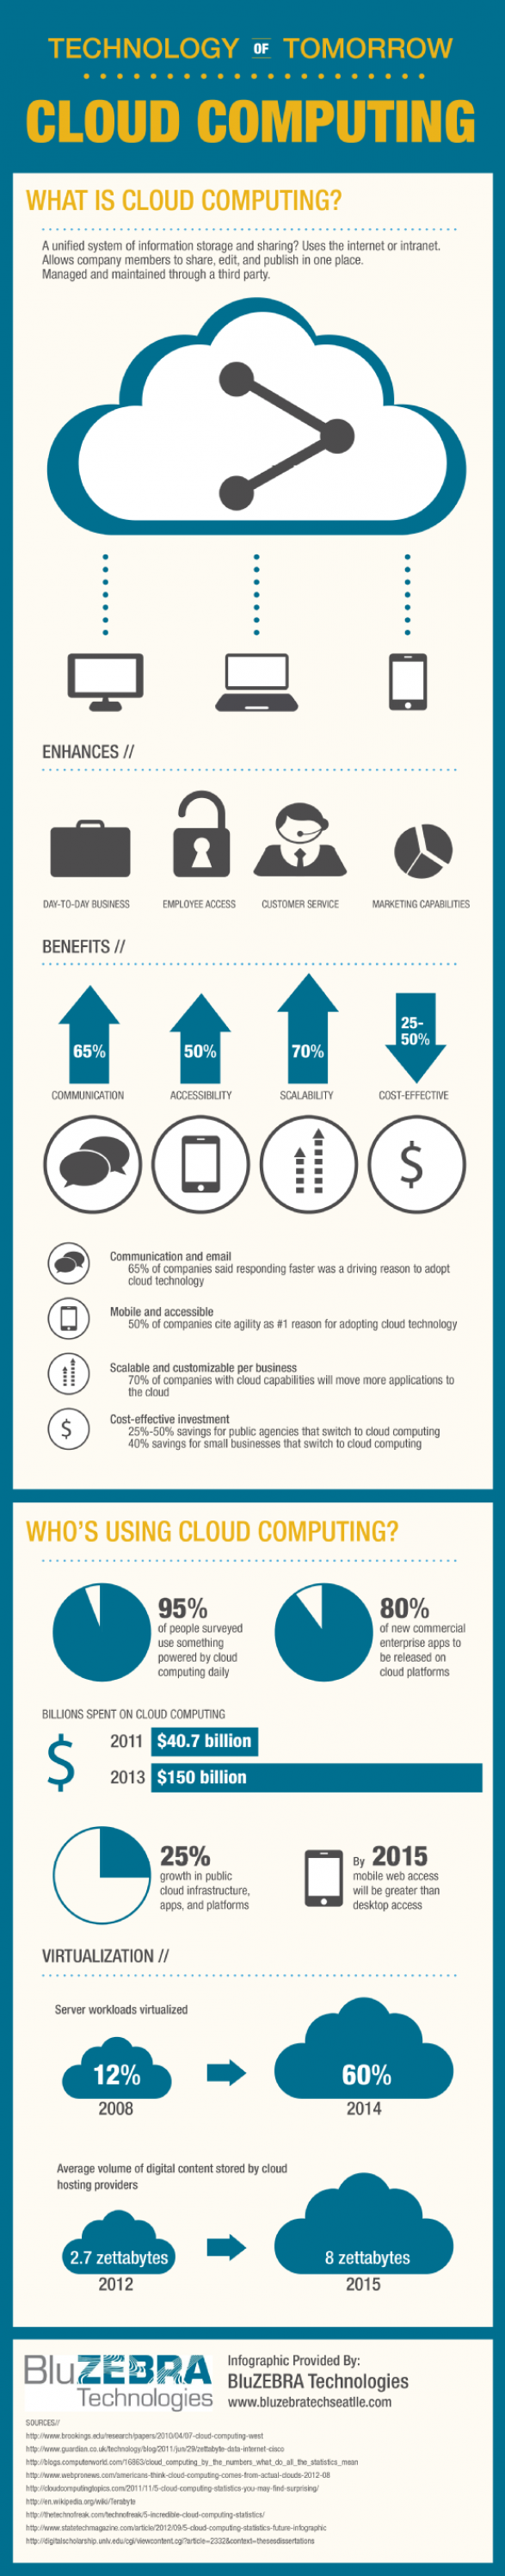 Cloud Computing: Technology of Tomorrow